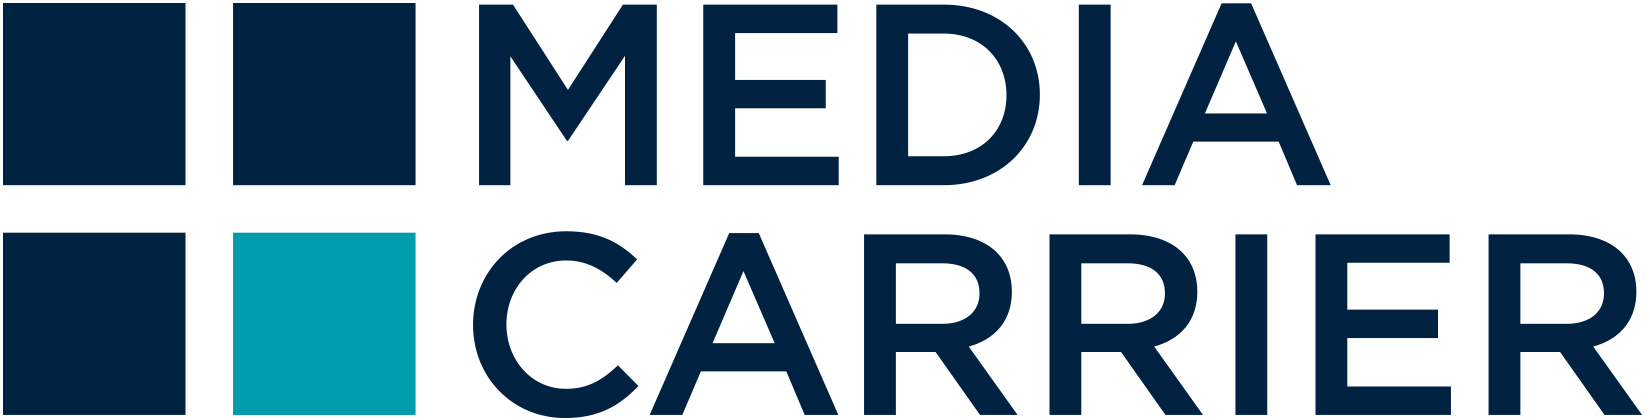 Logo Media Carrier